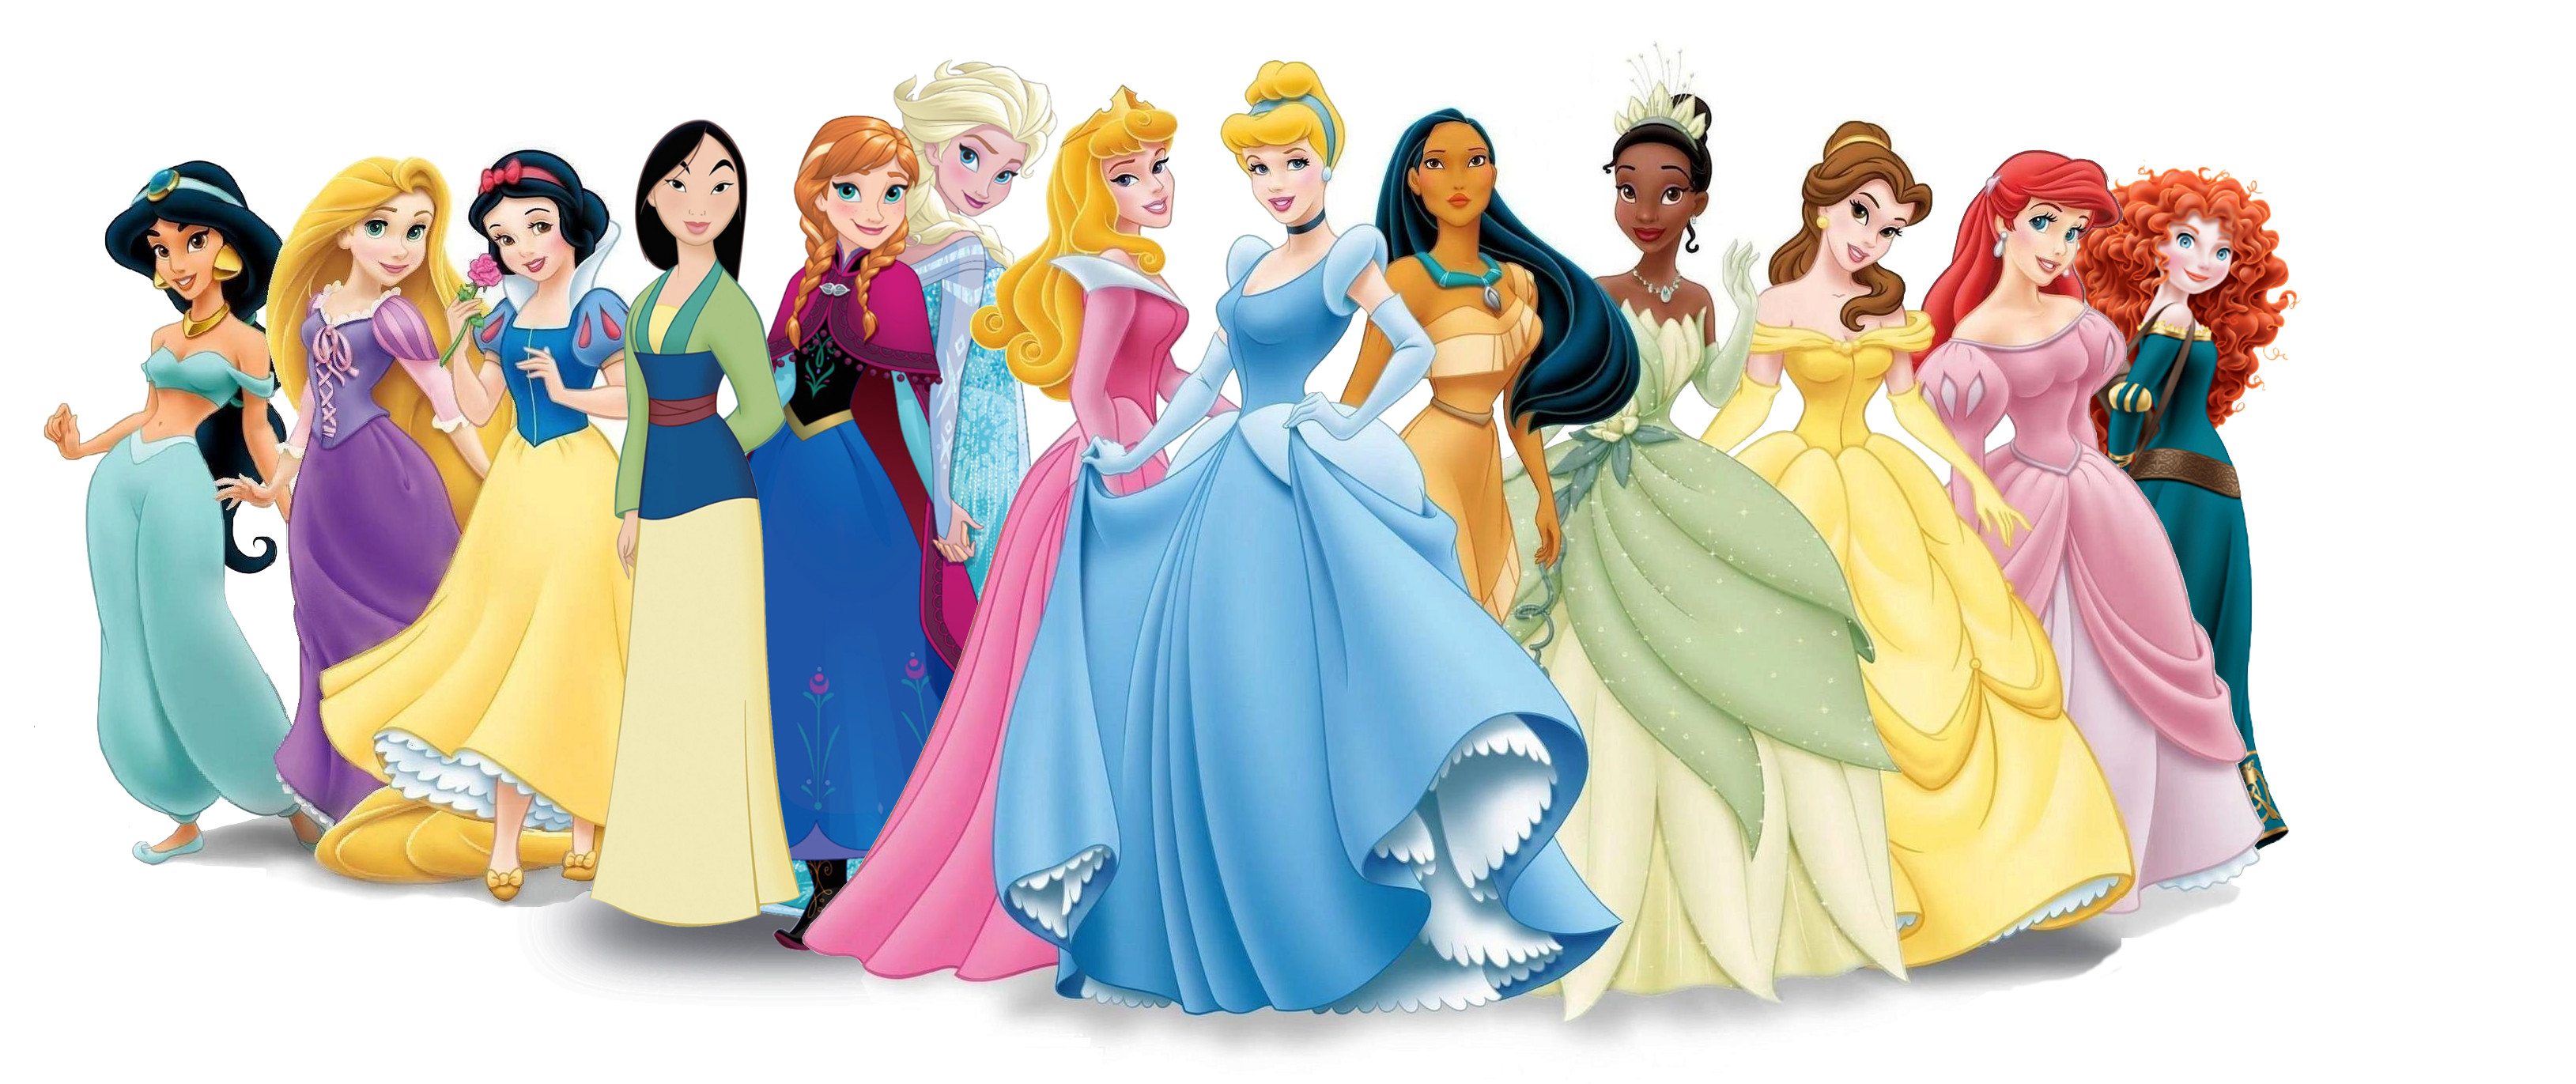 Disney Princesses with Anna & Elsa